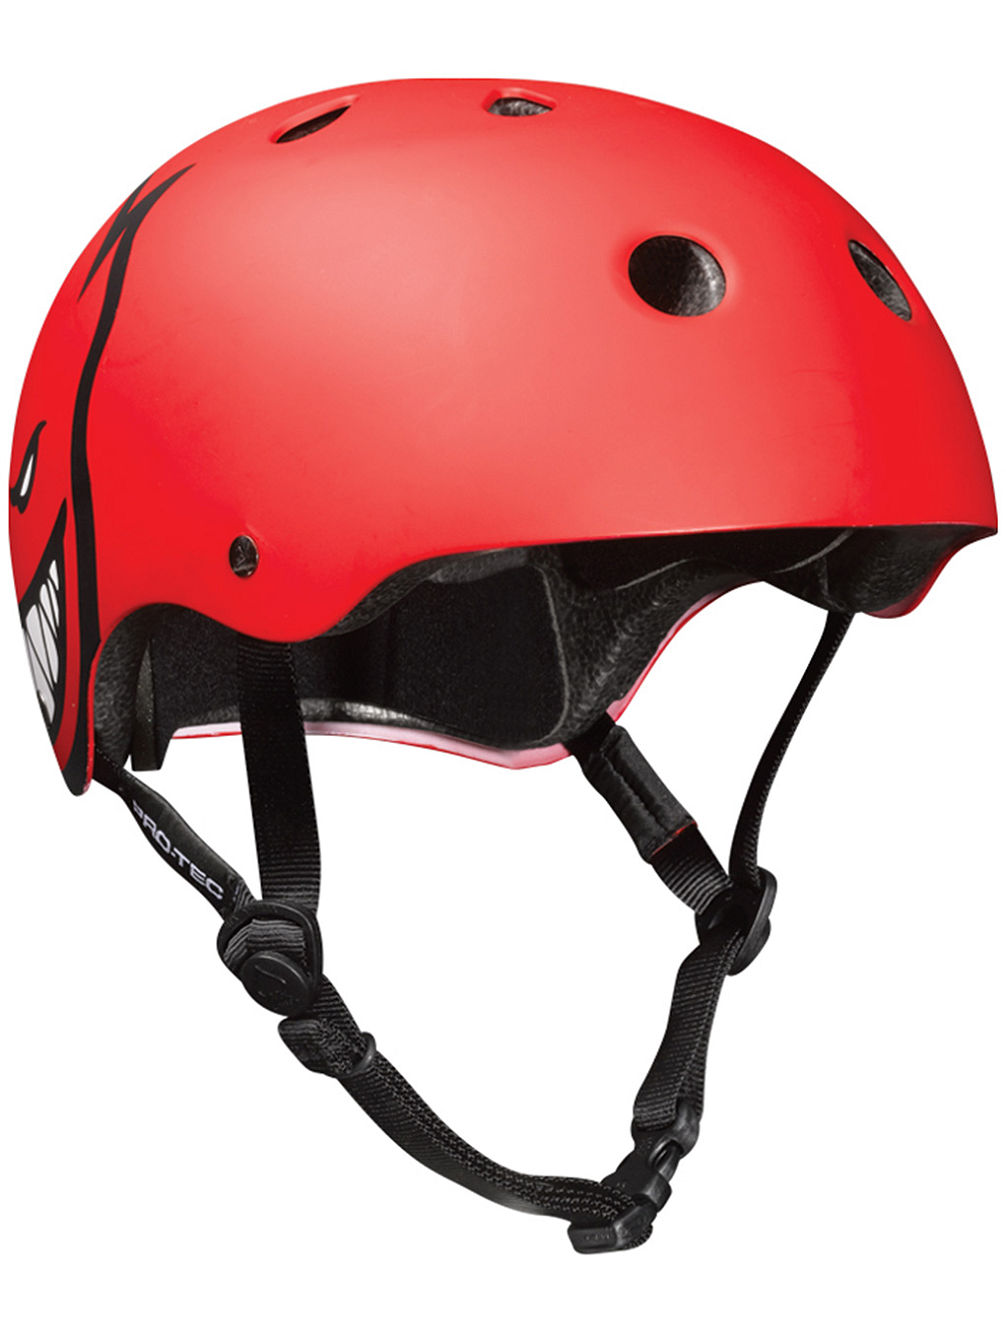 The Classic Skate Helm